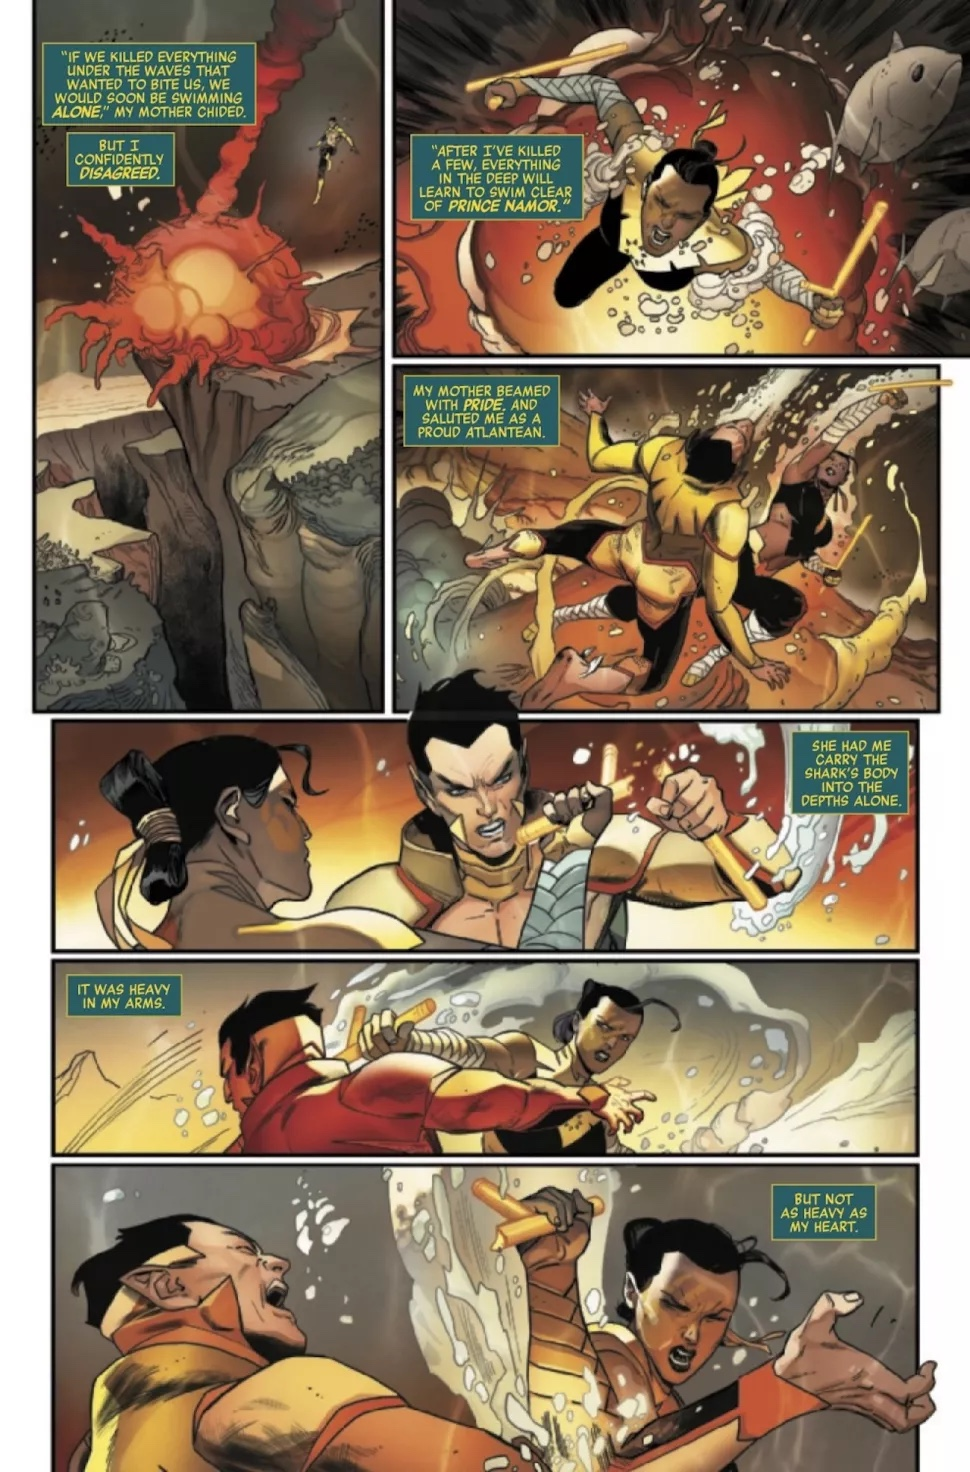 Avengers #43 preview